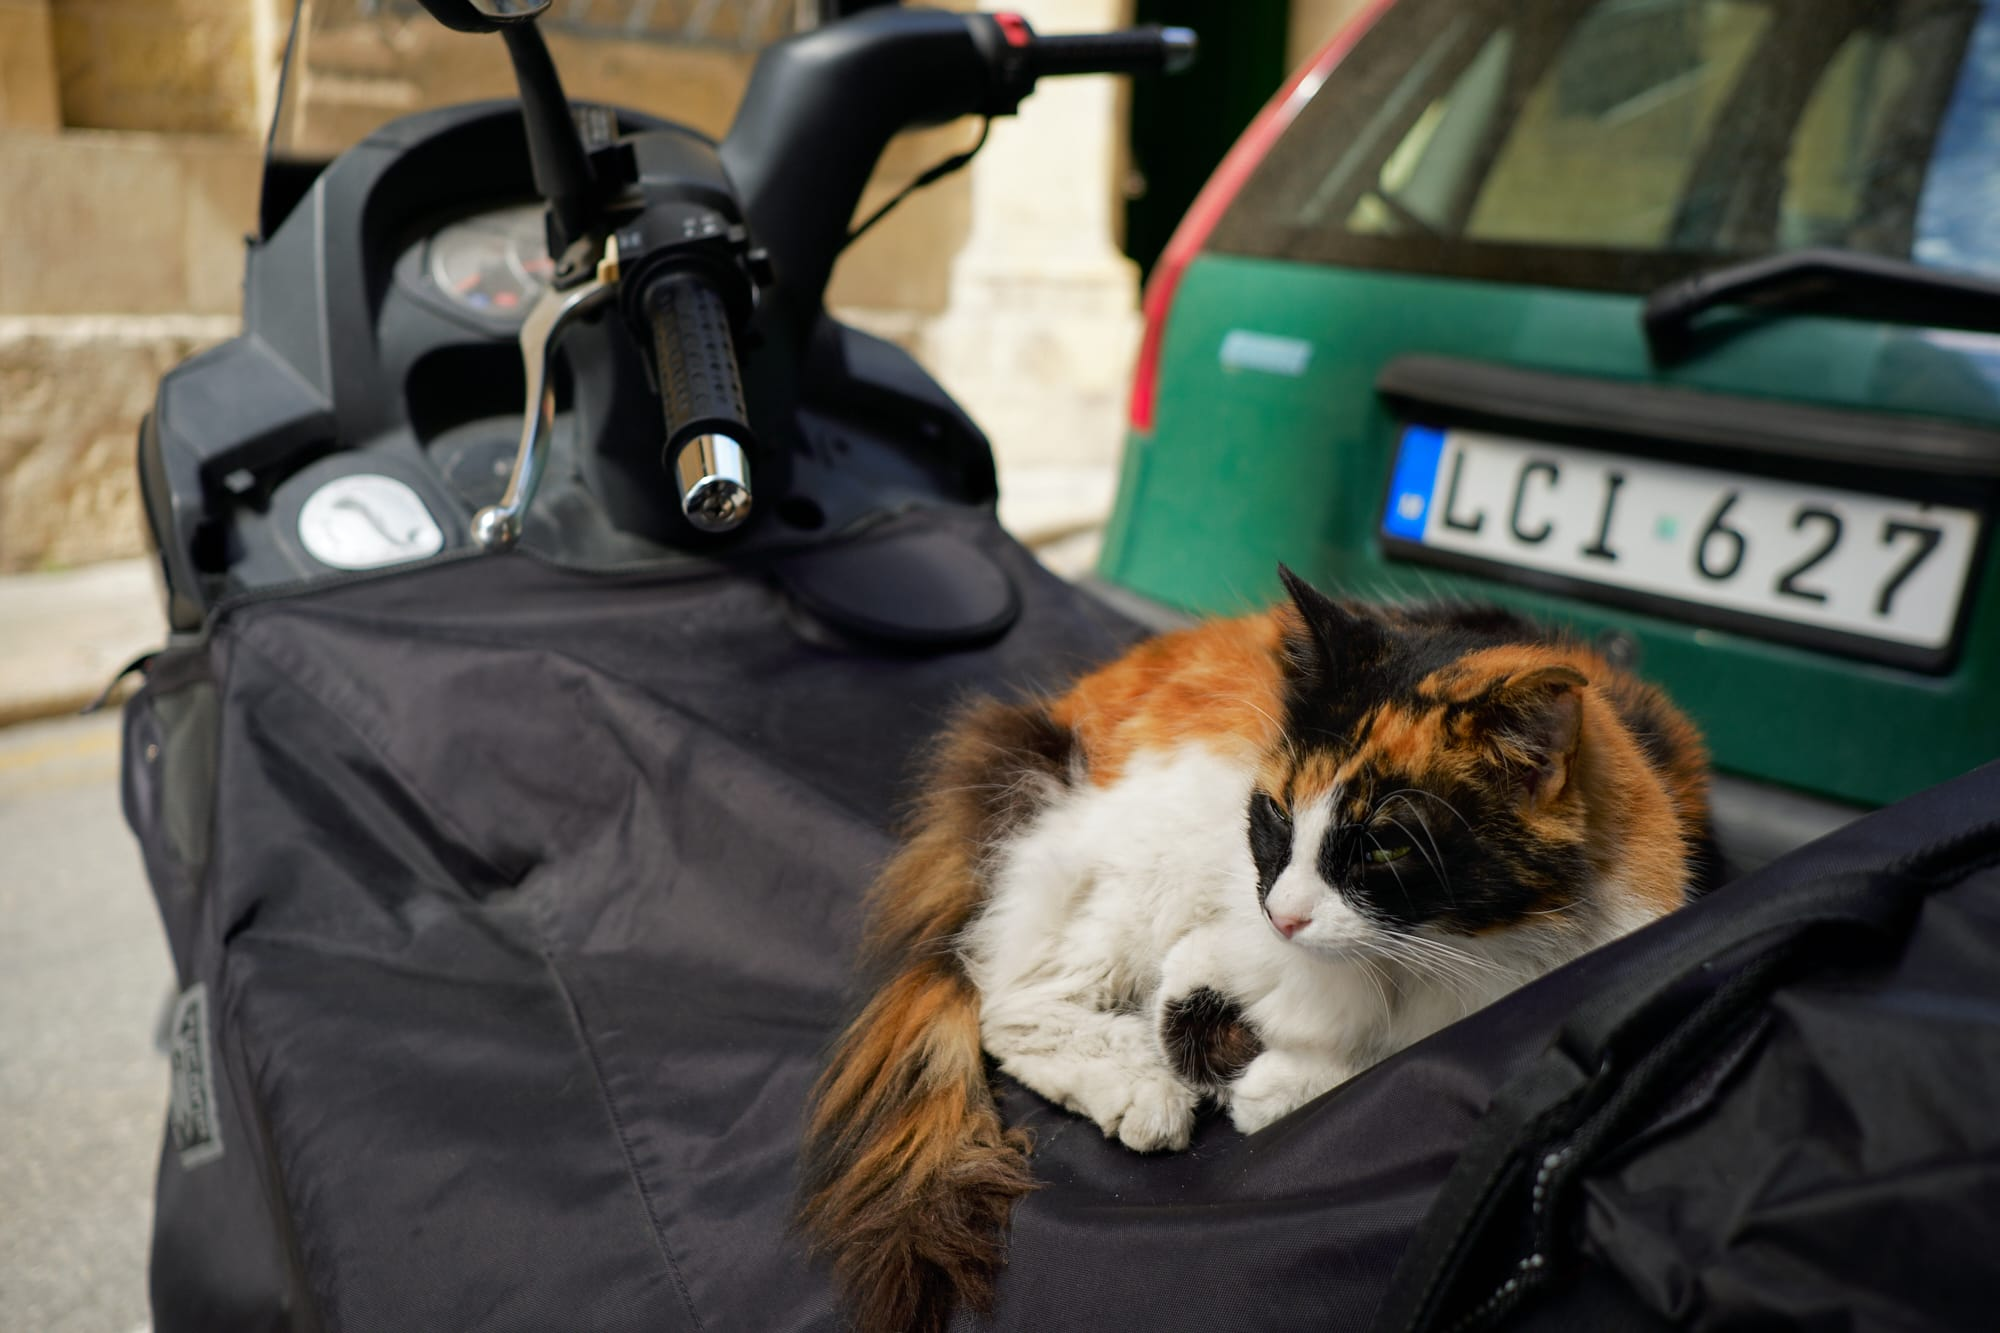 cat on a parked motorbike